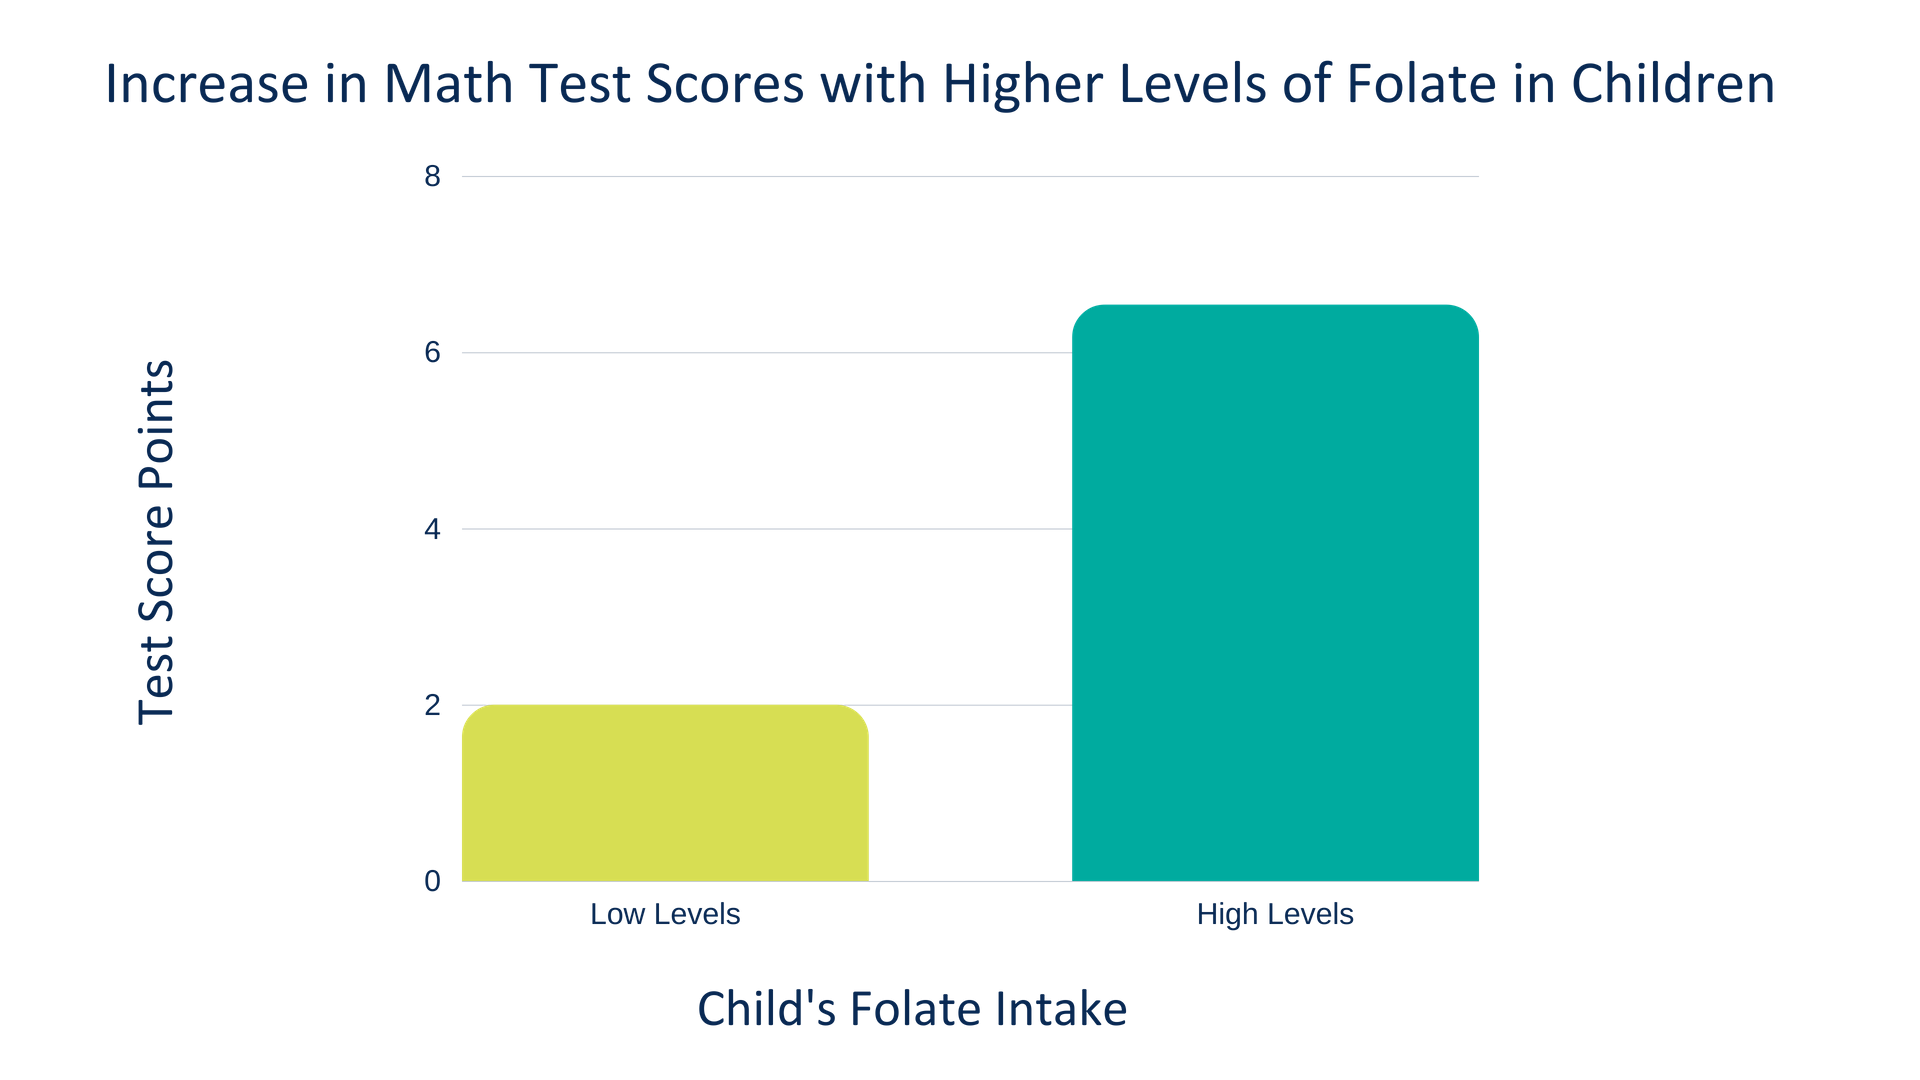 Increase in Math Test Scores with Higher Levels of Folate in Children